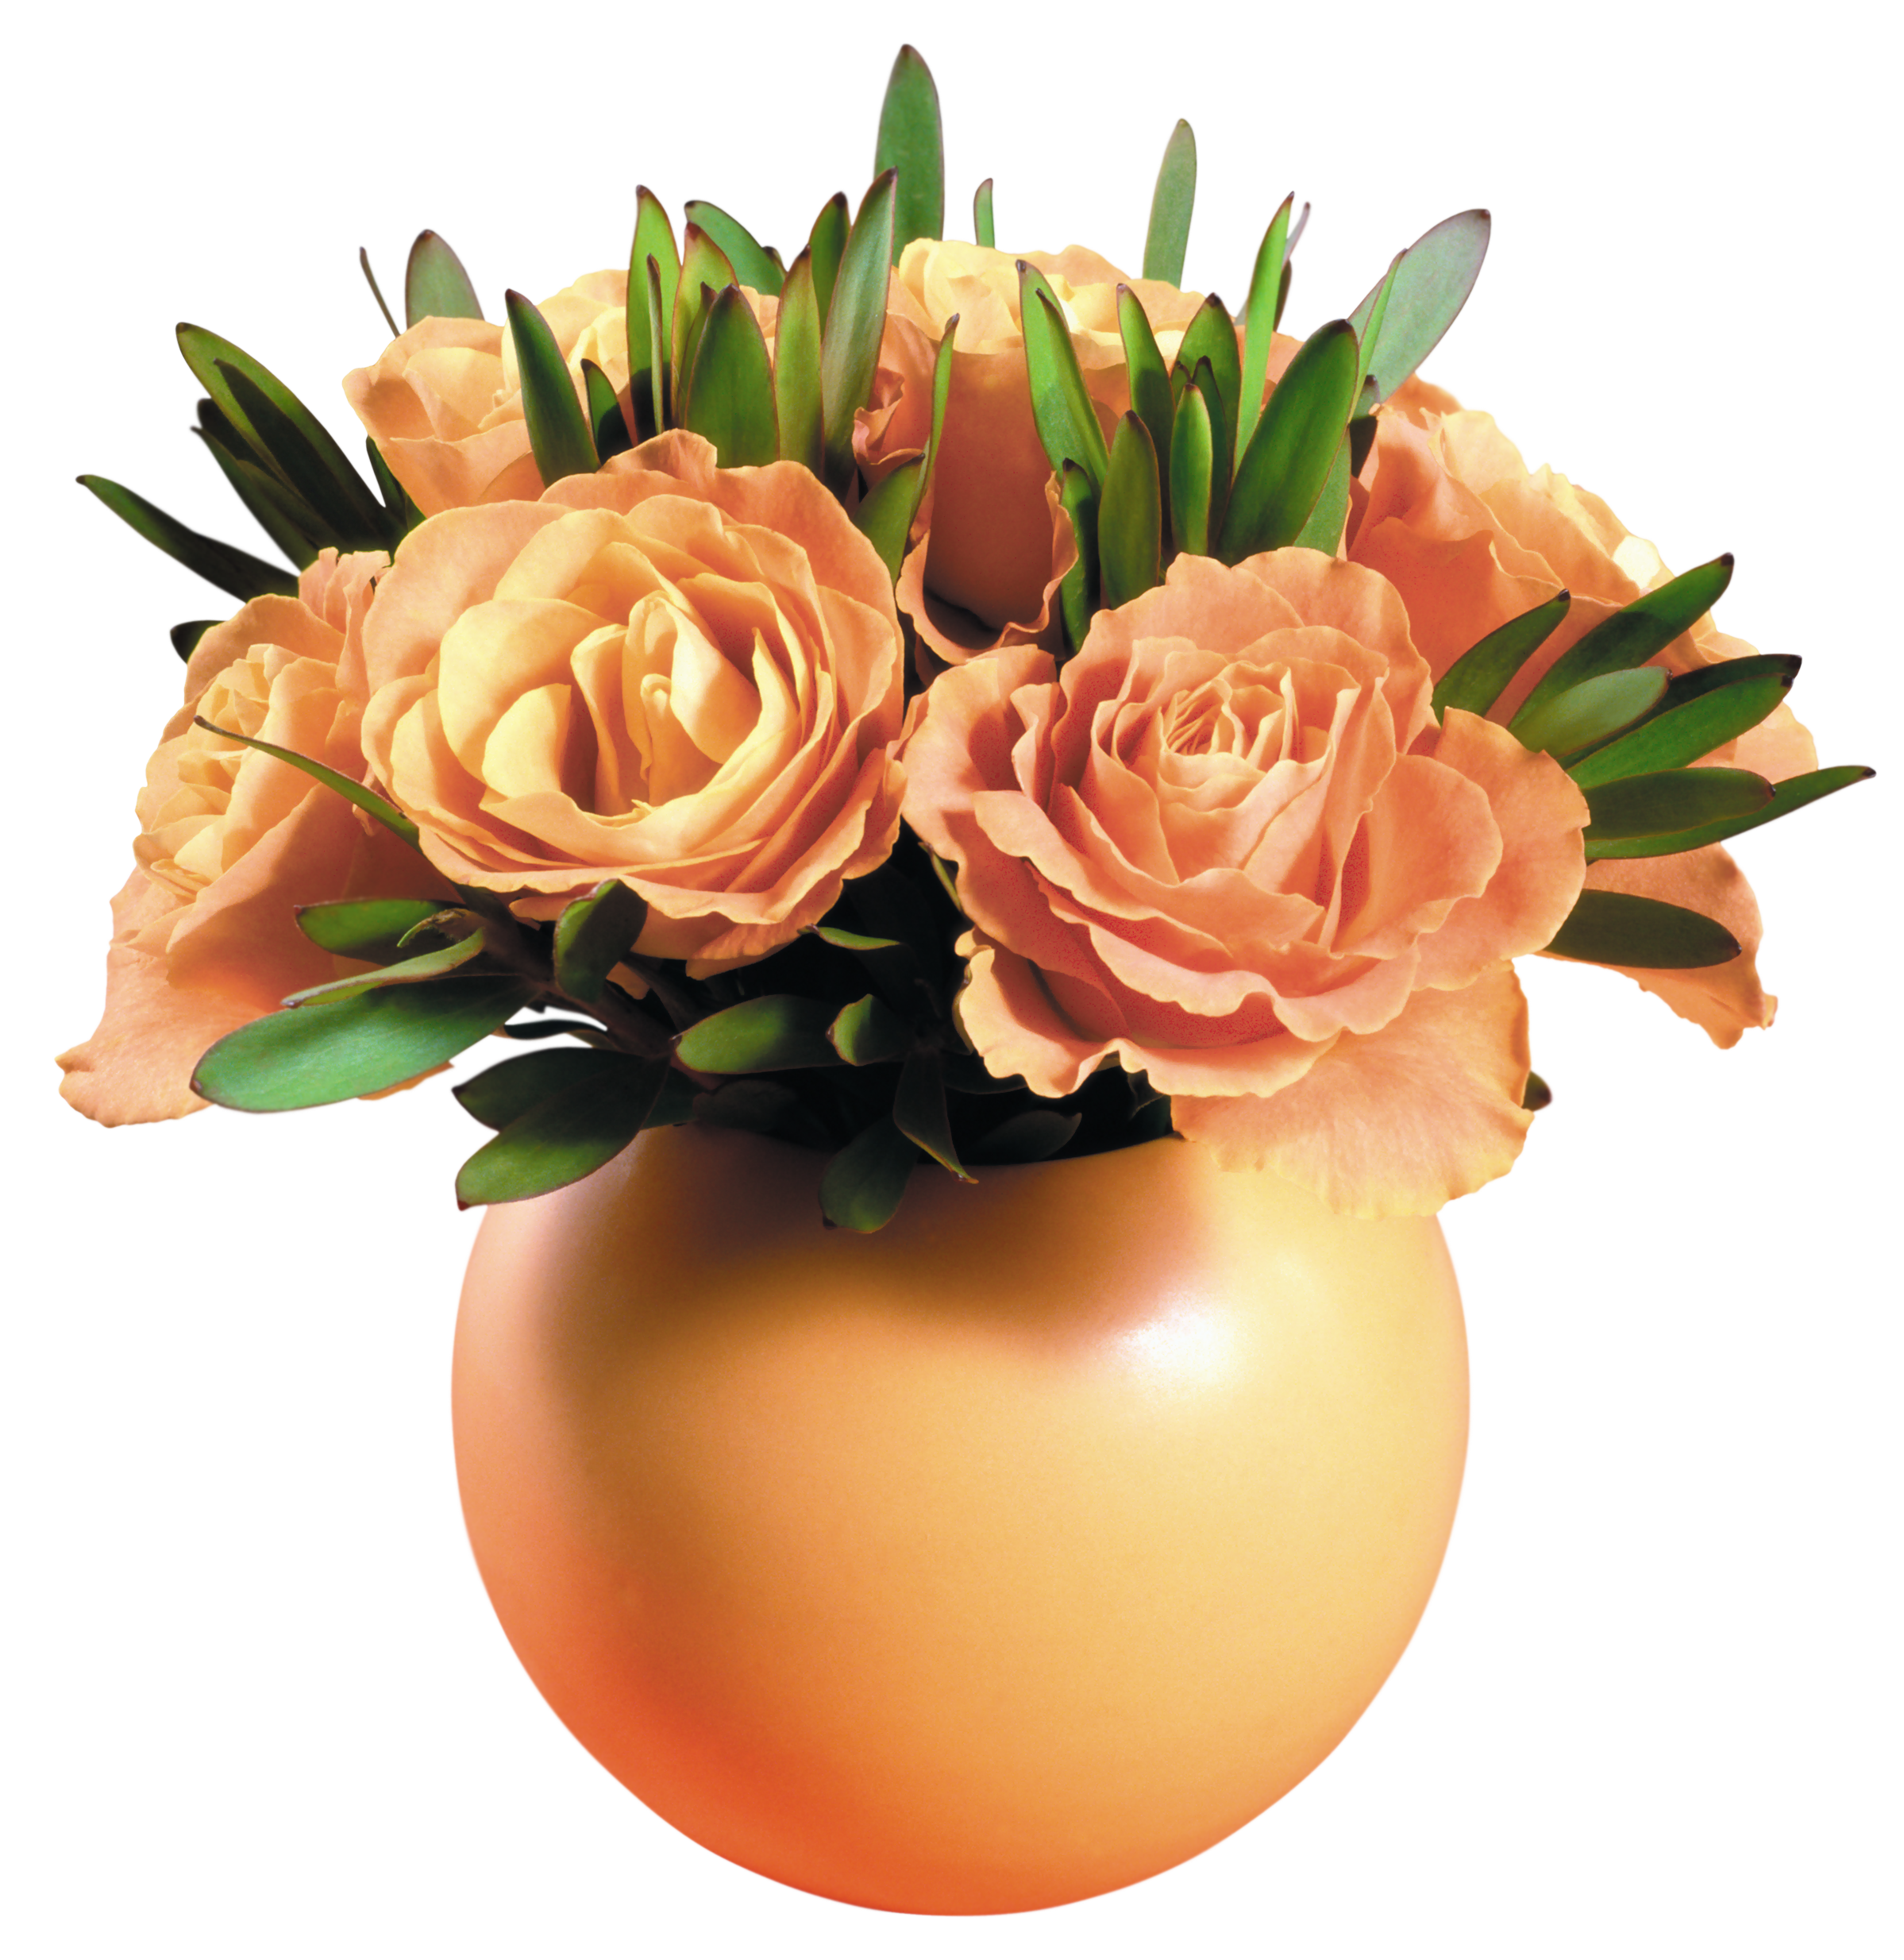 Yellow rose transparent png. Vase clipart gold